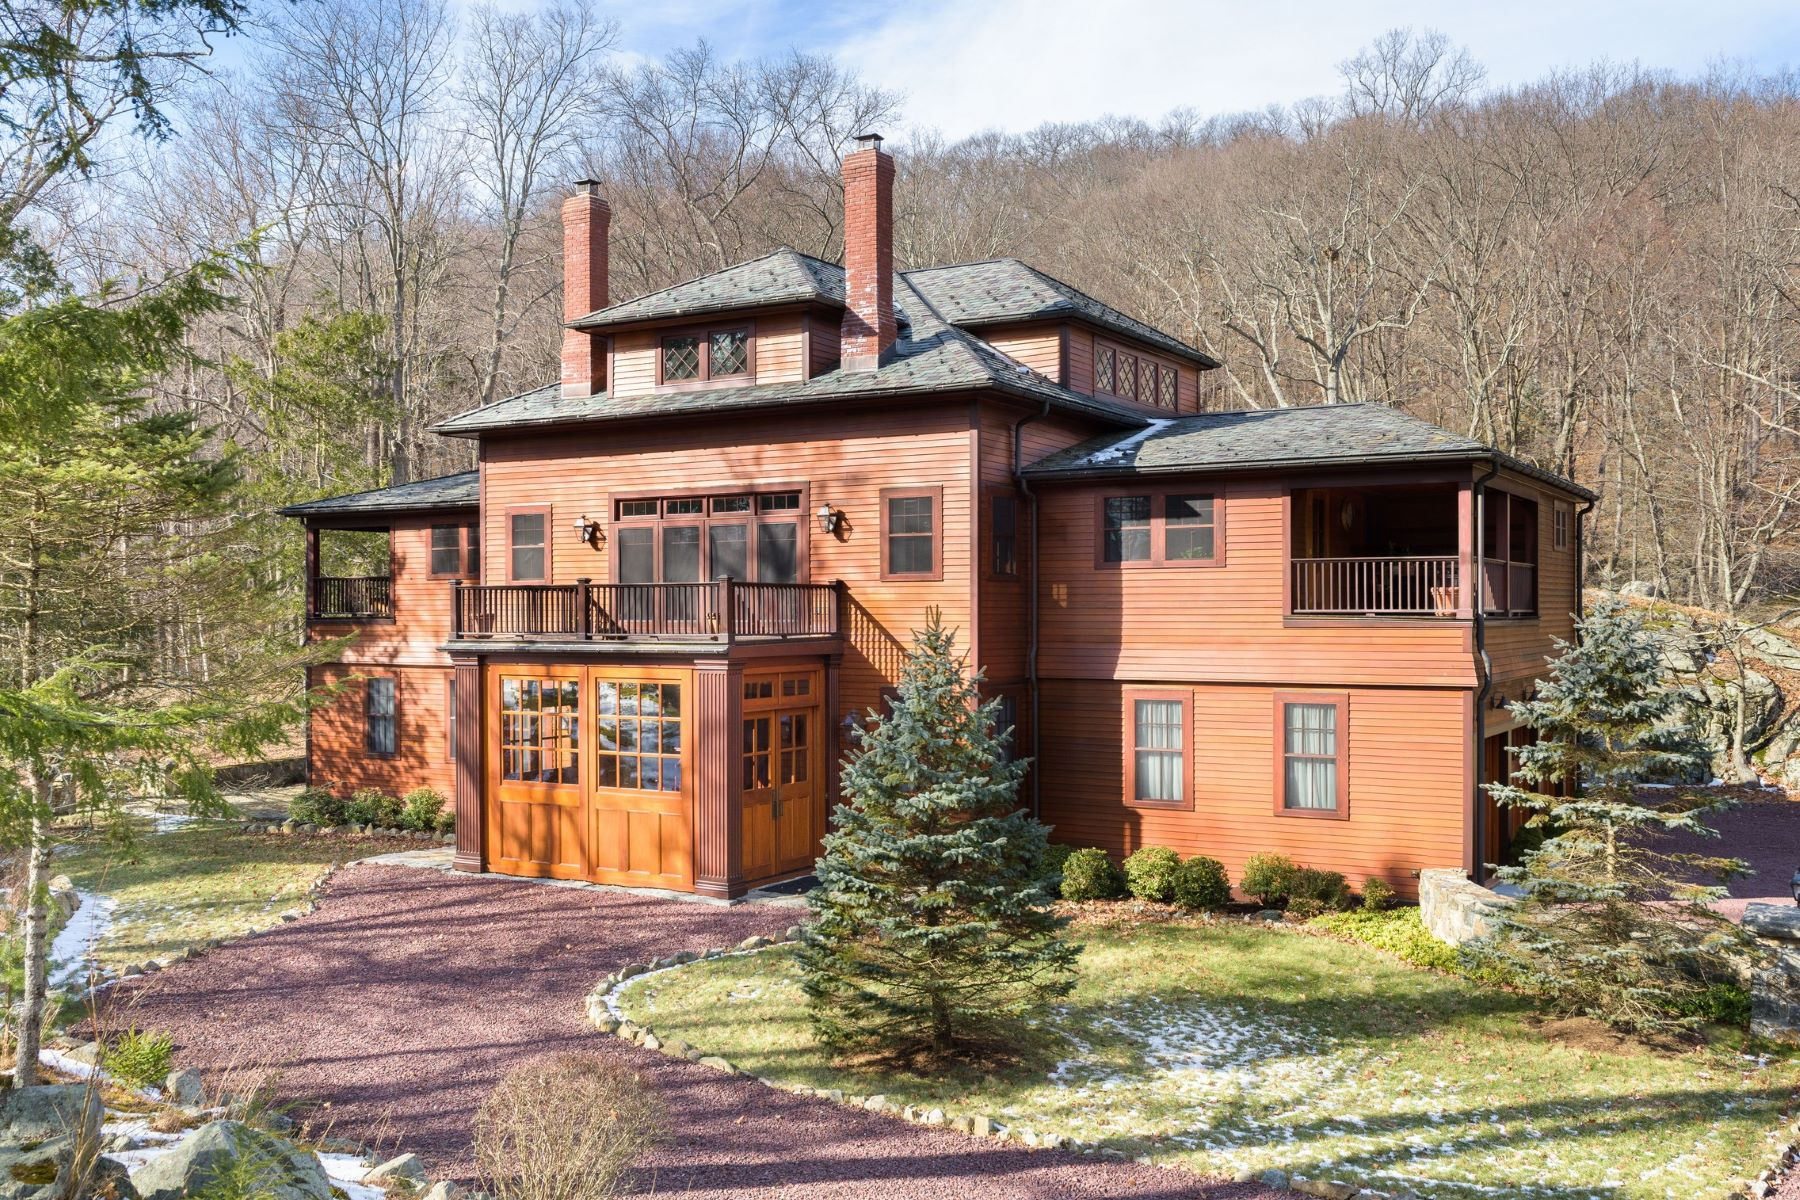 Moradia para Venda às Patterson Brook Carriage House 18 Patterson Brook Rd Tuxedo Park, Nova York, 10987 Estados Unidos